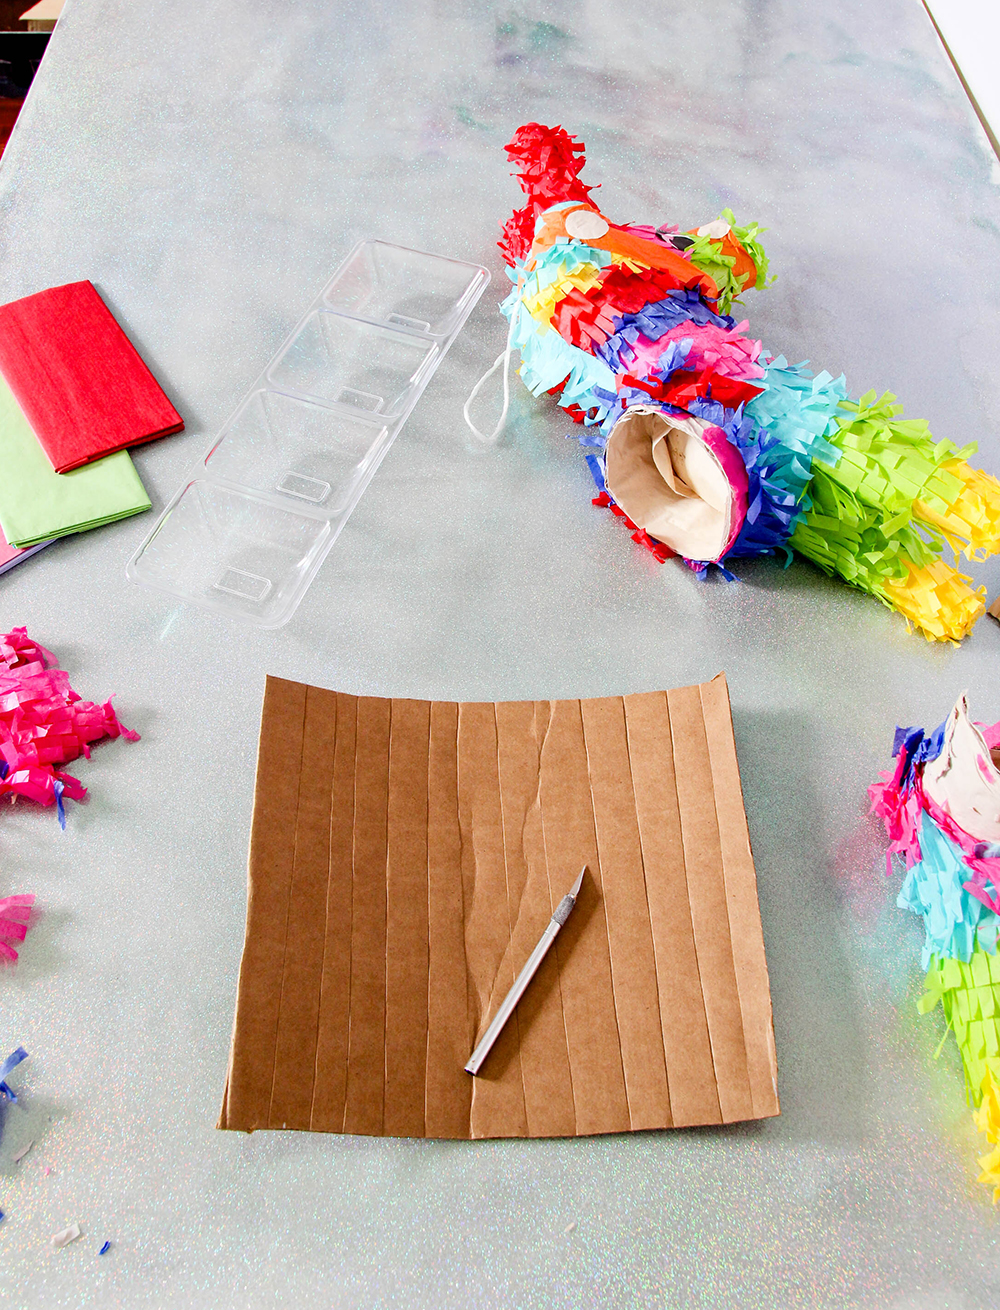 Pinata bar - cut cardboard